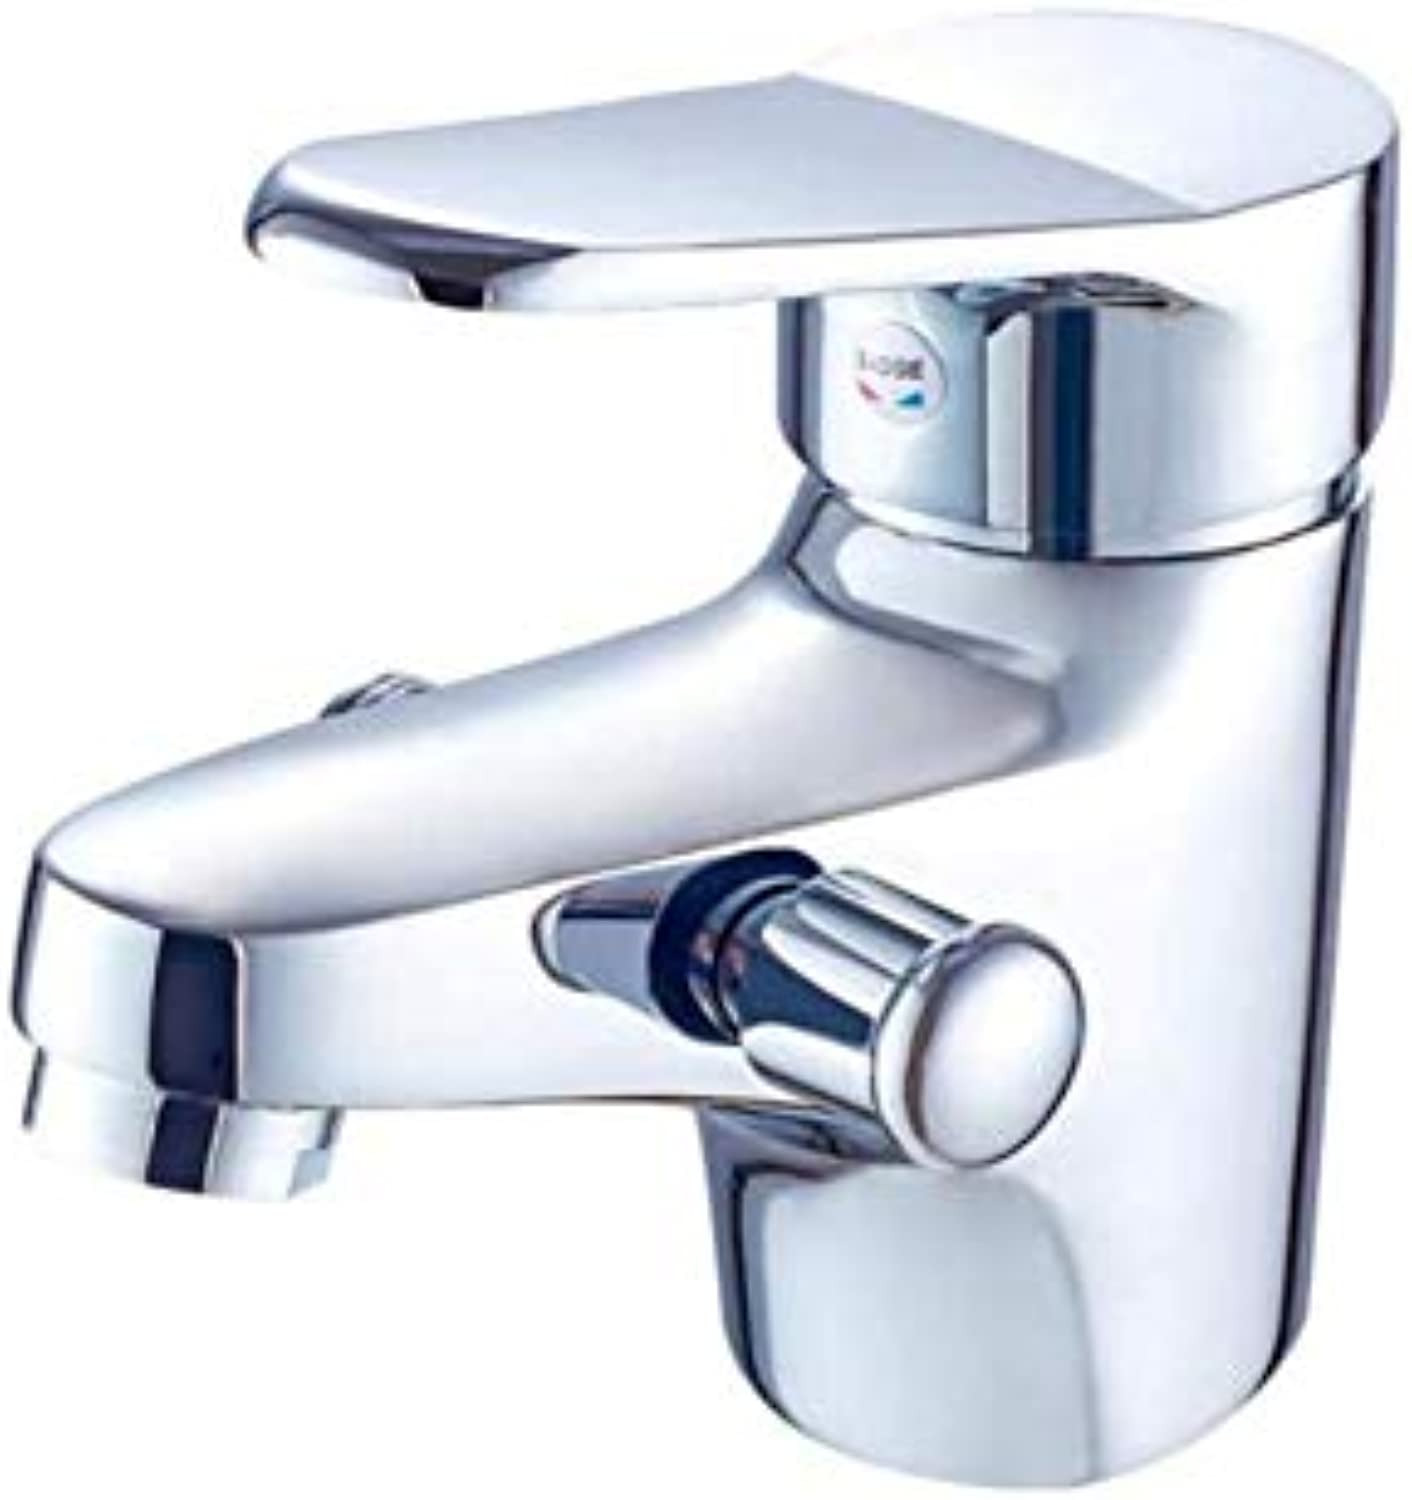 Taps Kitchen Sinktaps Mixer Swivel Faucet Sink Water Faucet Single-Hole Basin Mixing Valve Table Basin Washbasin Faucet